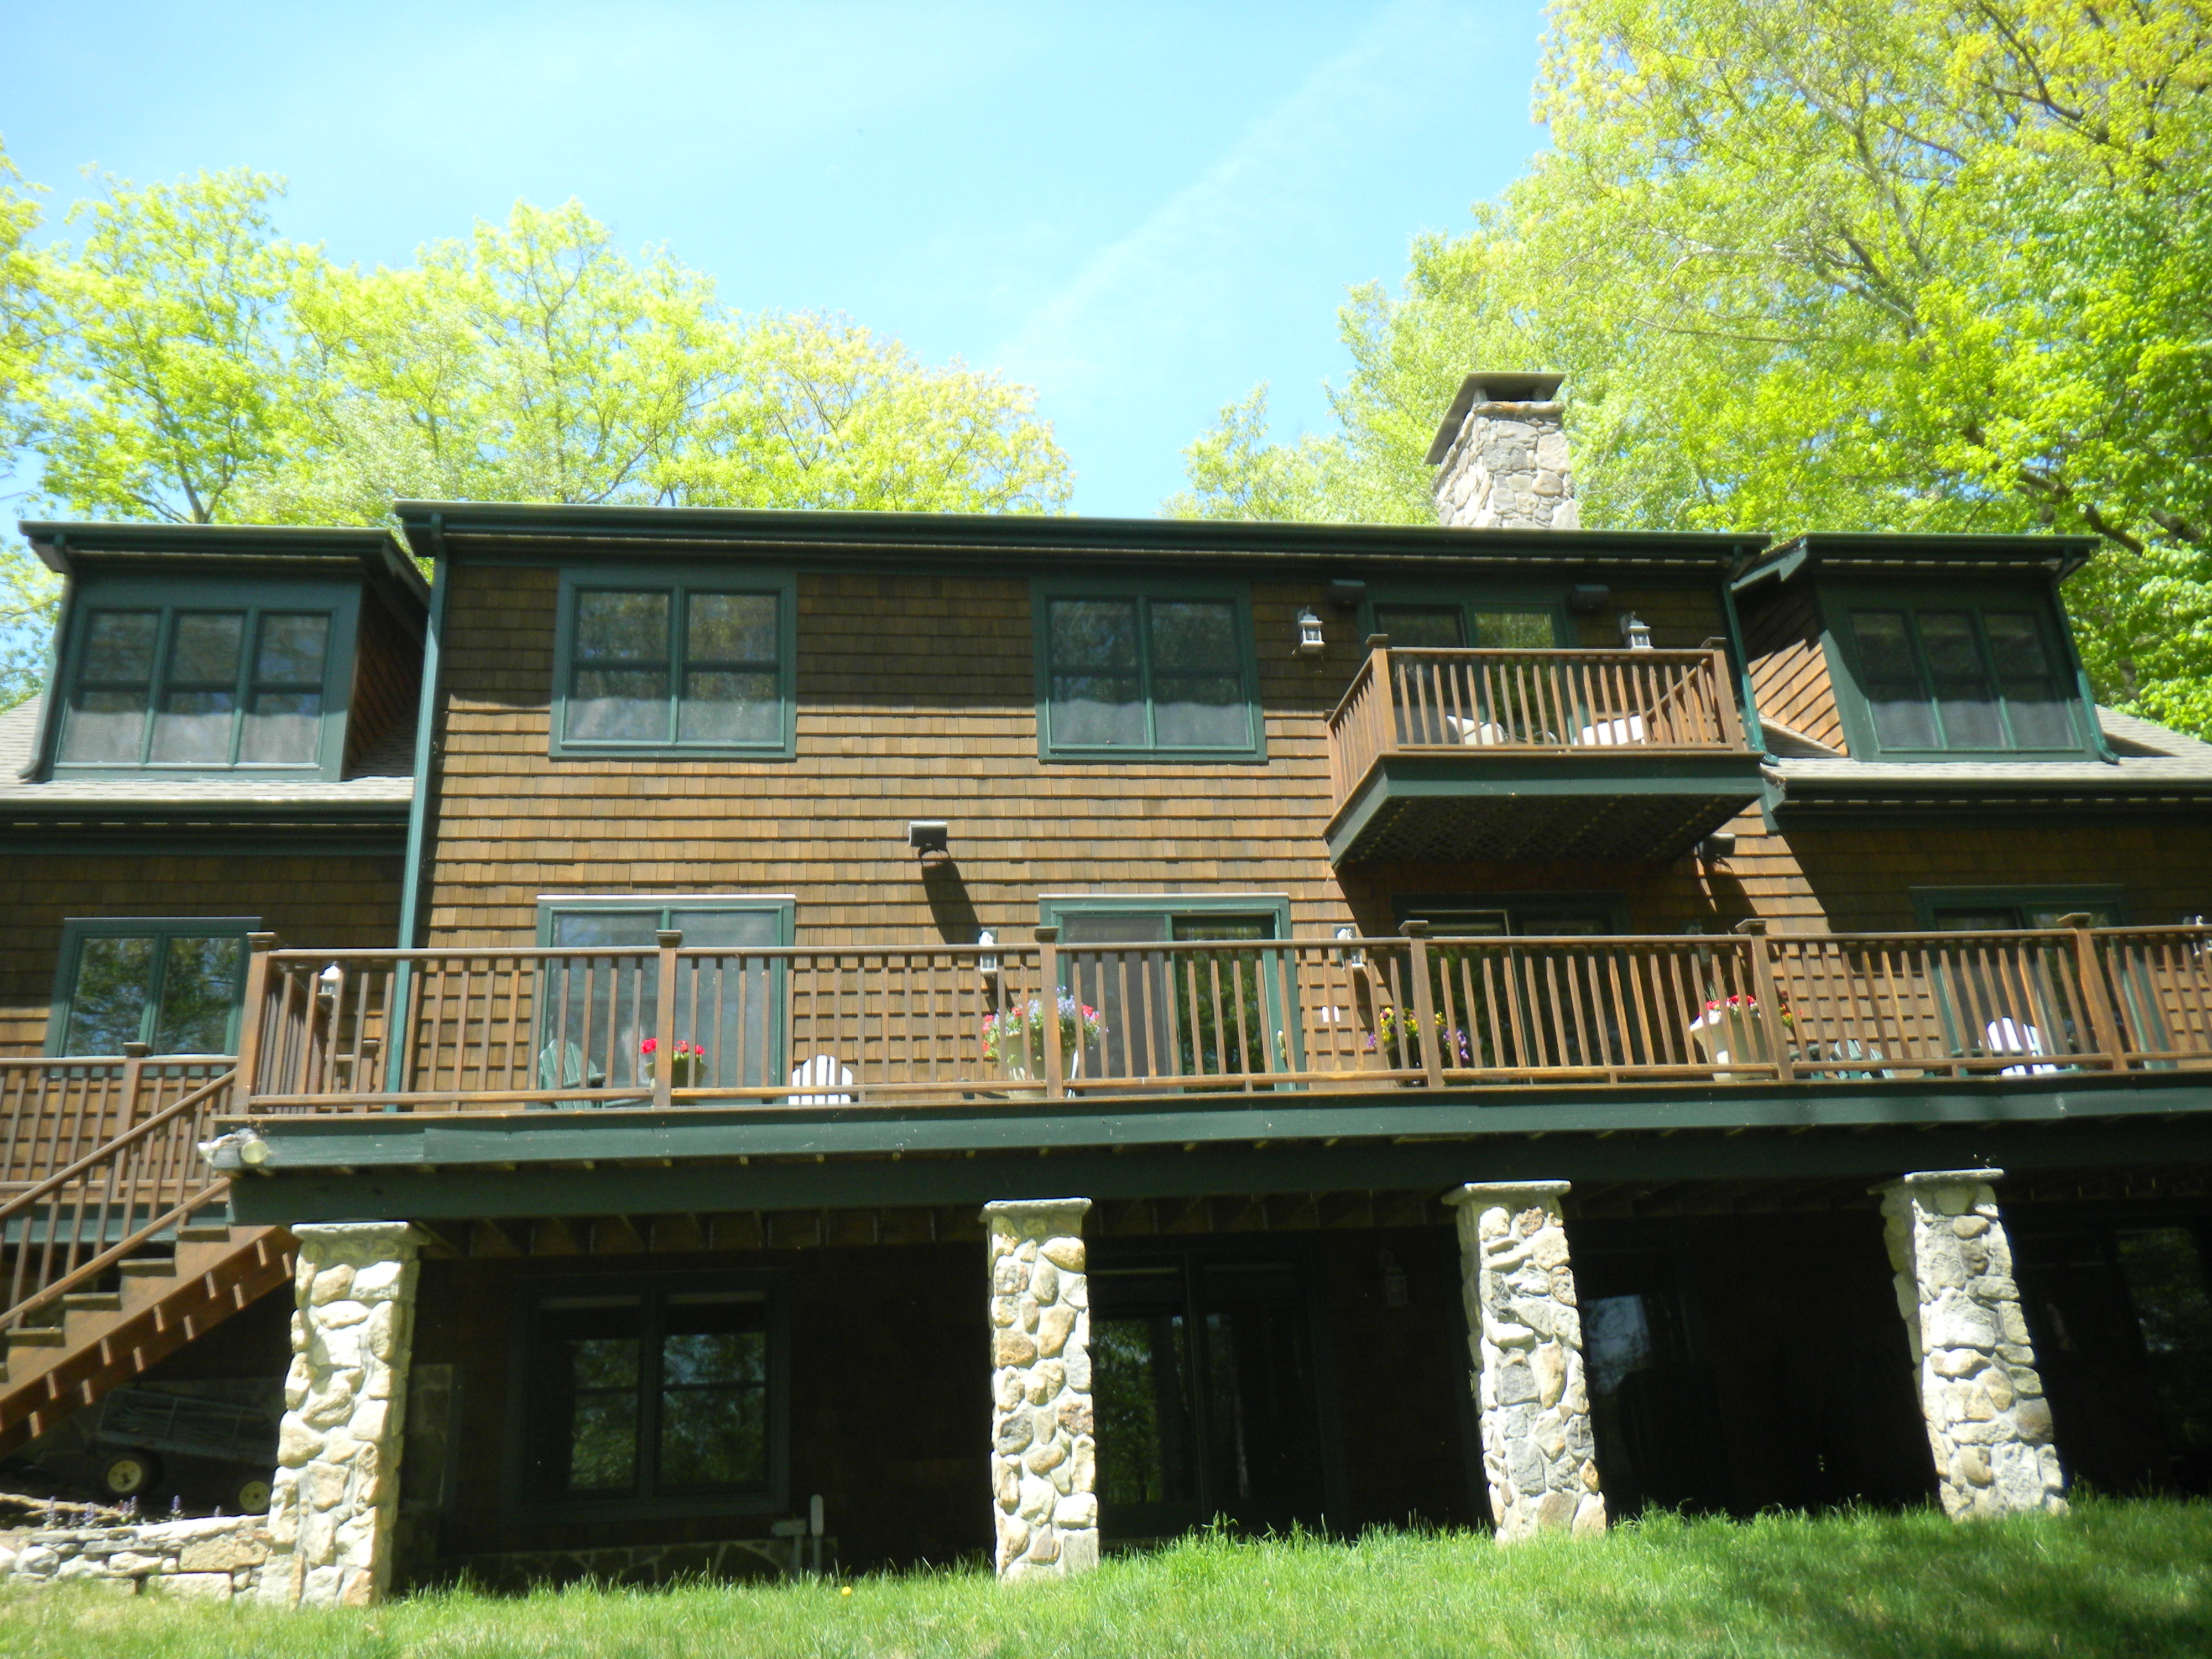 Single Family Home for Sale at Classic Woodridge Lakefrotn Beauty 263 West Hyerdale Dr Goshen, Connecticut, 06756 United States